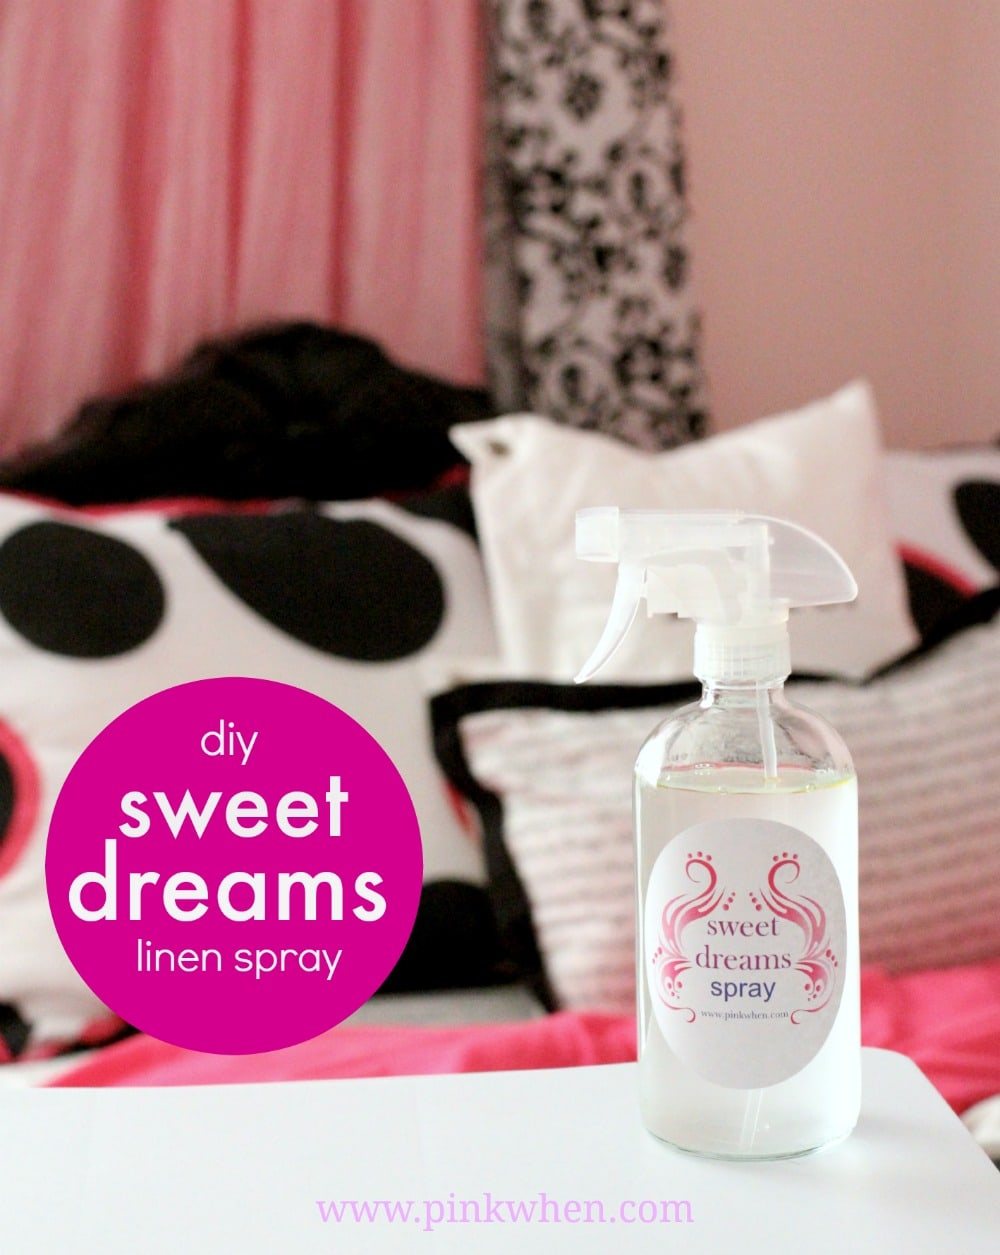 Sweet Dreams DIY Linen Spray